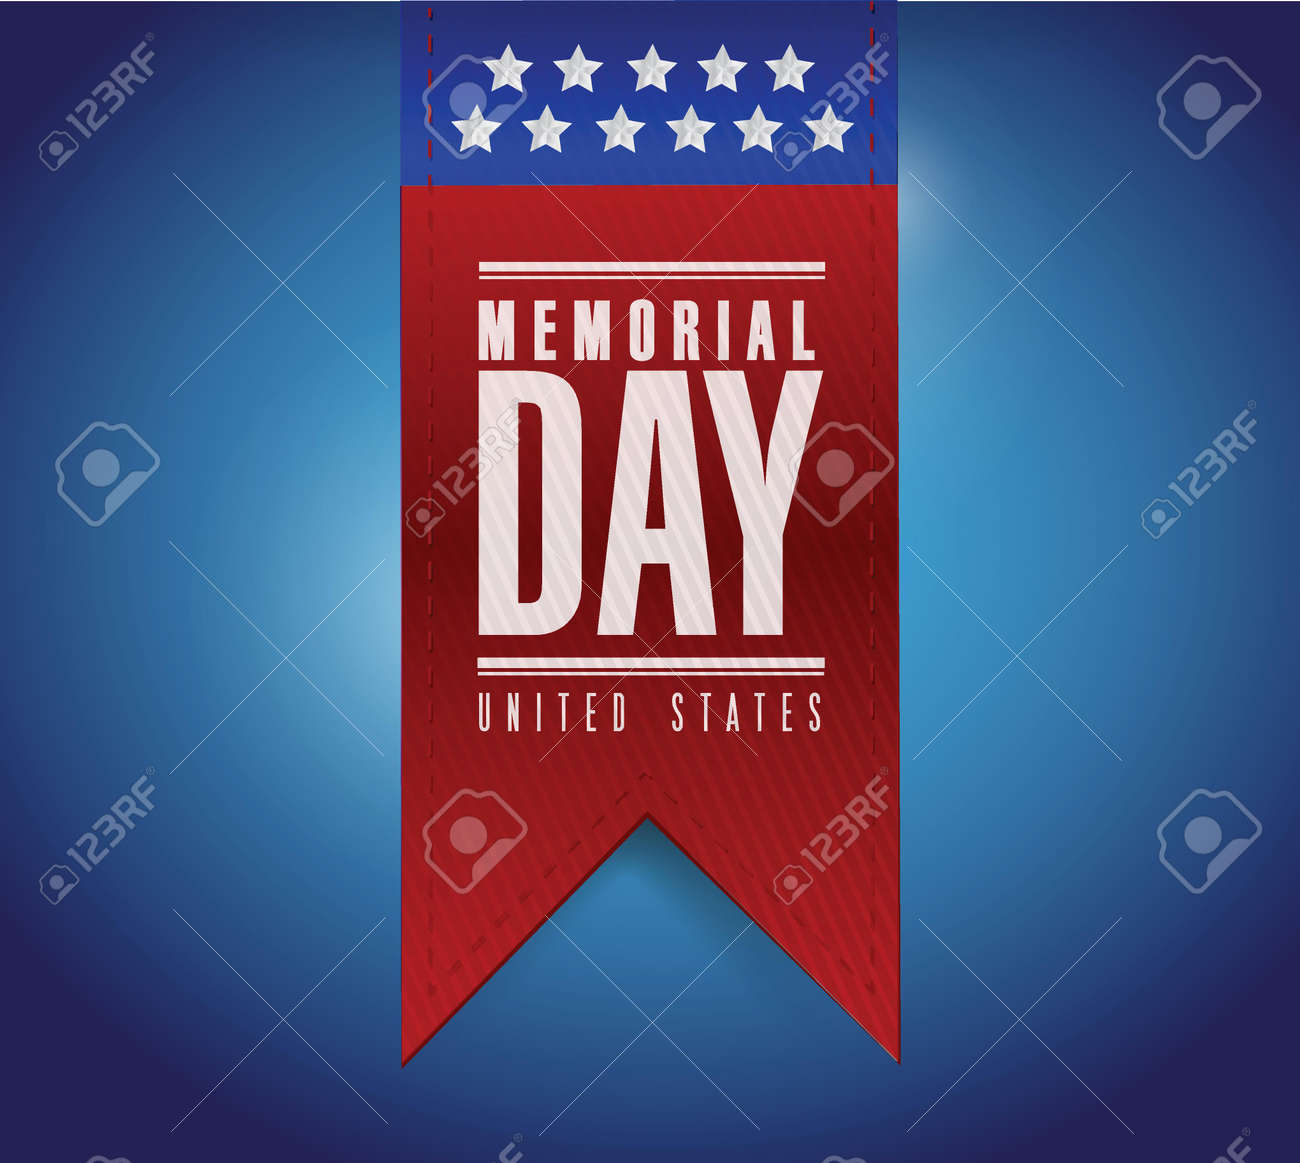 memorial day banner sign illustration design over a blue